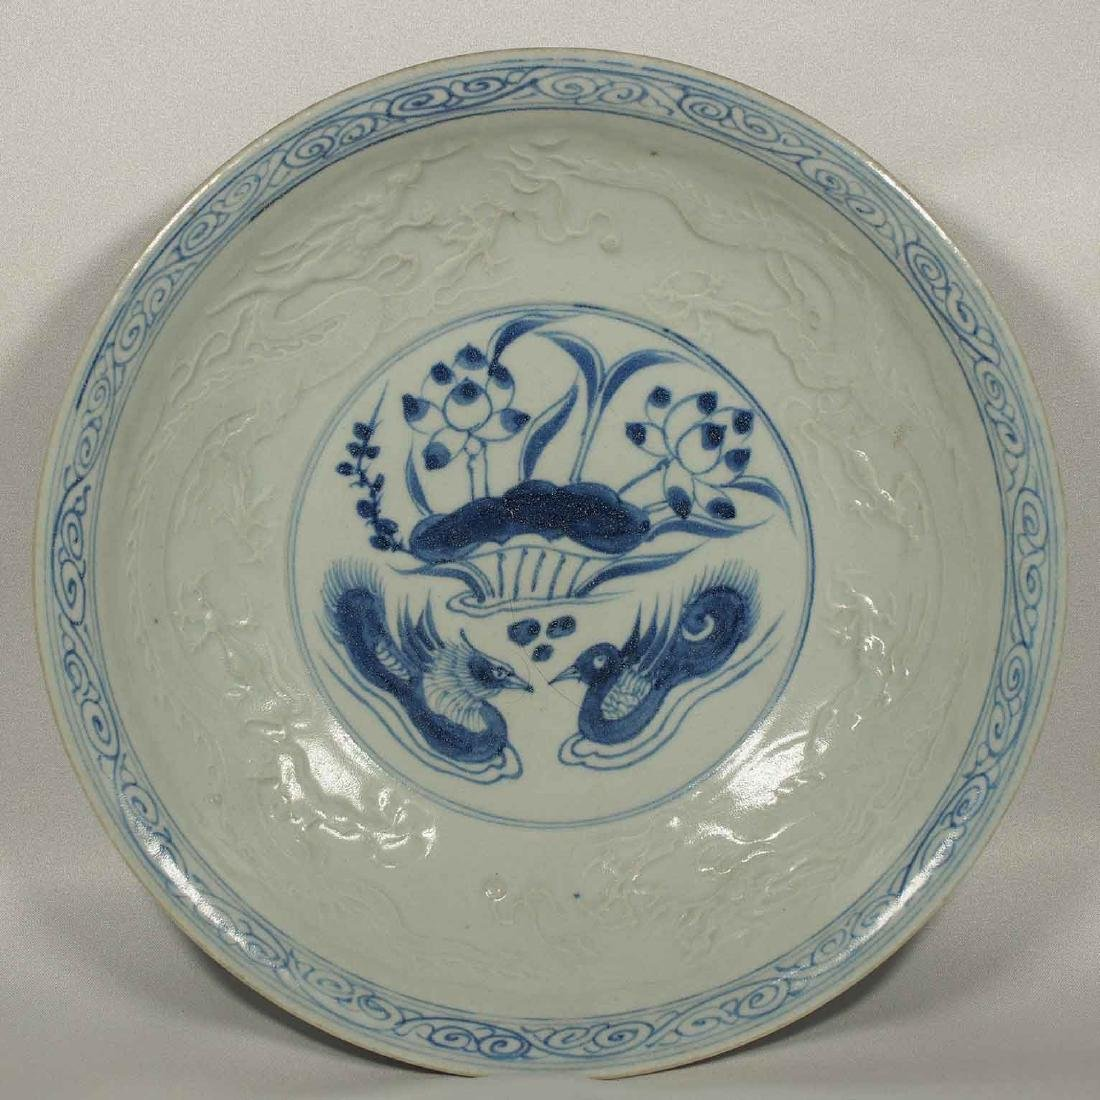 (TL) Plate with Embossed Dragons, Yuan-early Ming